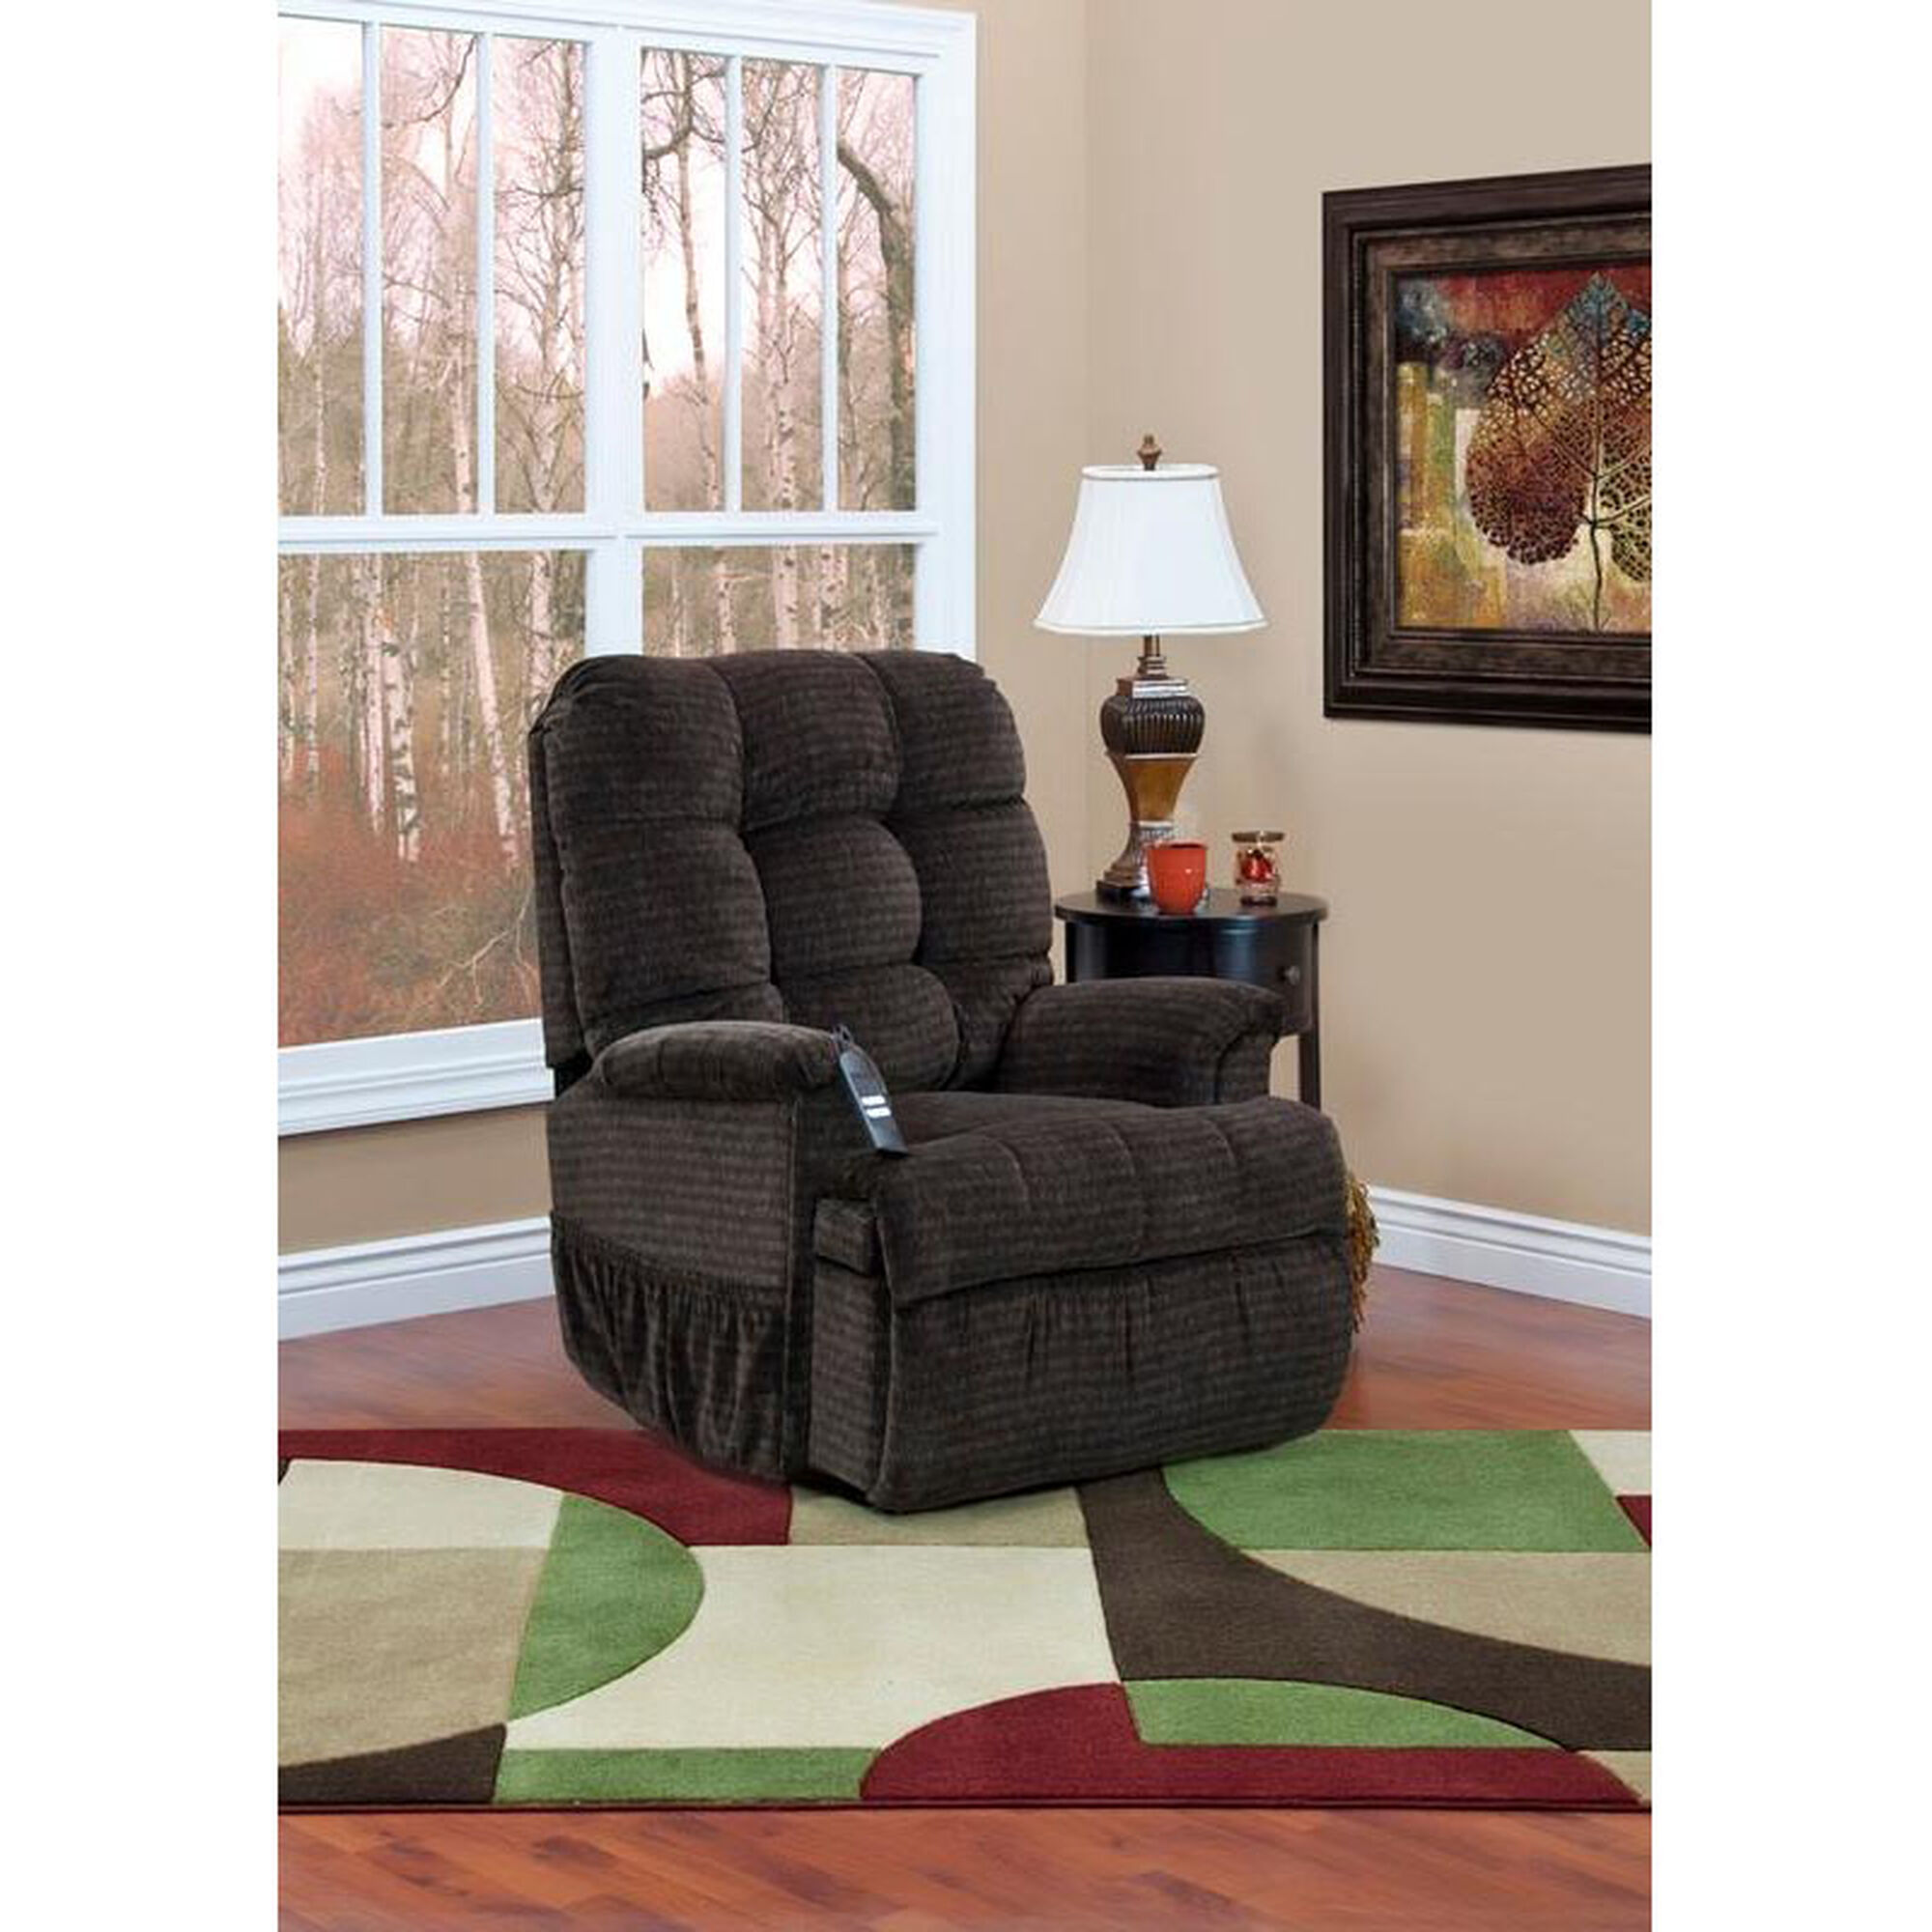 med lift reclining sleeper petite power lift chair with tv position and full chaise pad cabo. Black Bedroom Furniture Sets. Home Design Ideas